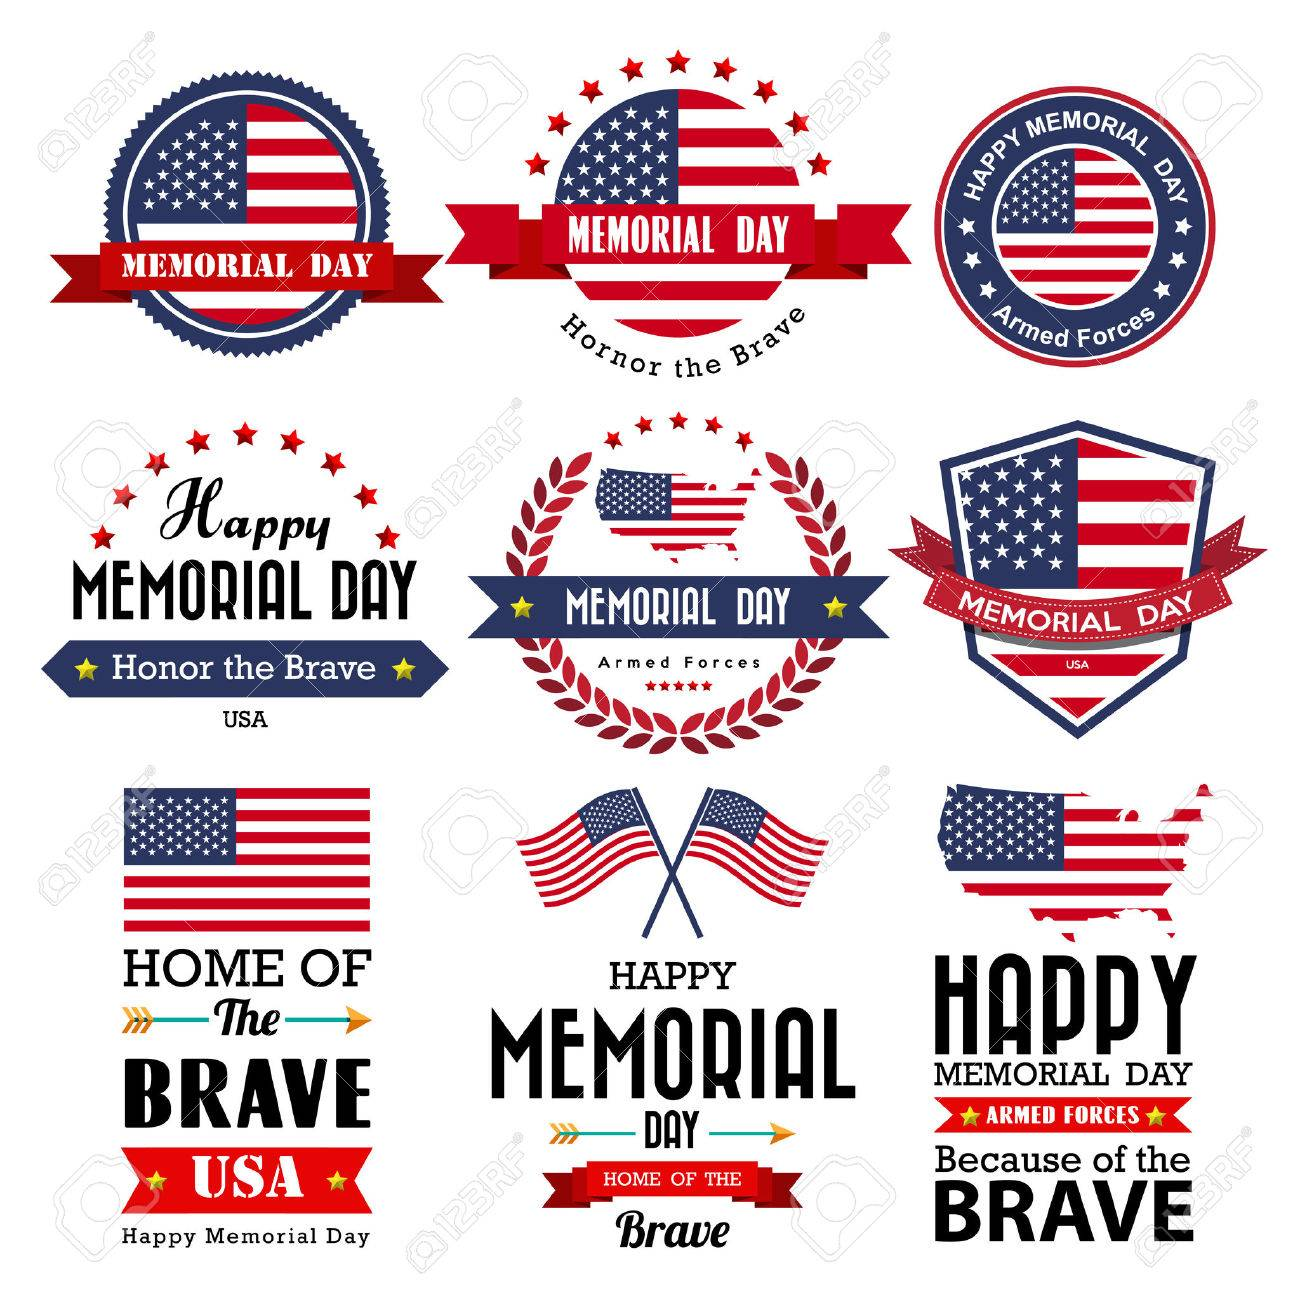 Happy Memorial Day vector greeting card ,badge and labels .Illustrator eps10 - 39570331